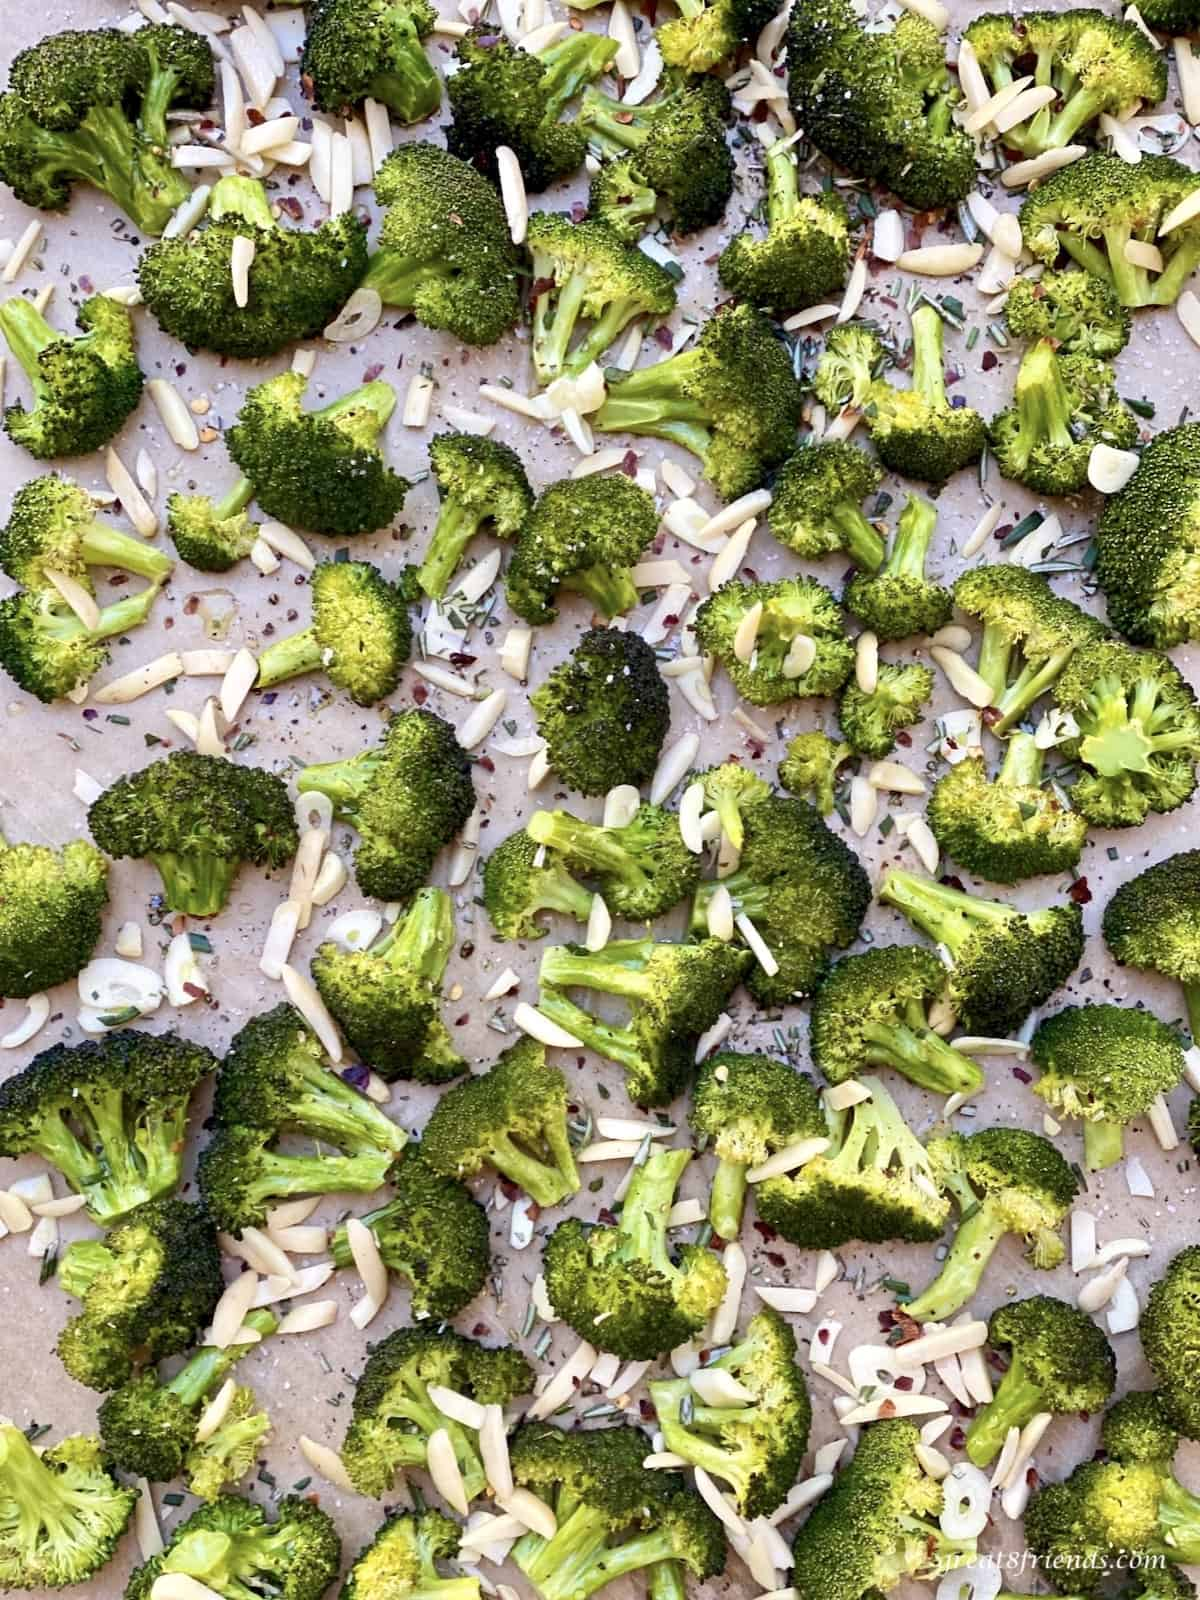 Broccoli florets on a baking sheet sprinkled with almonds and spices.